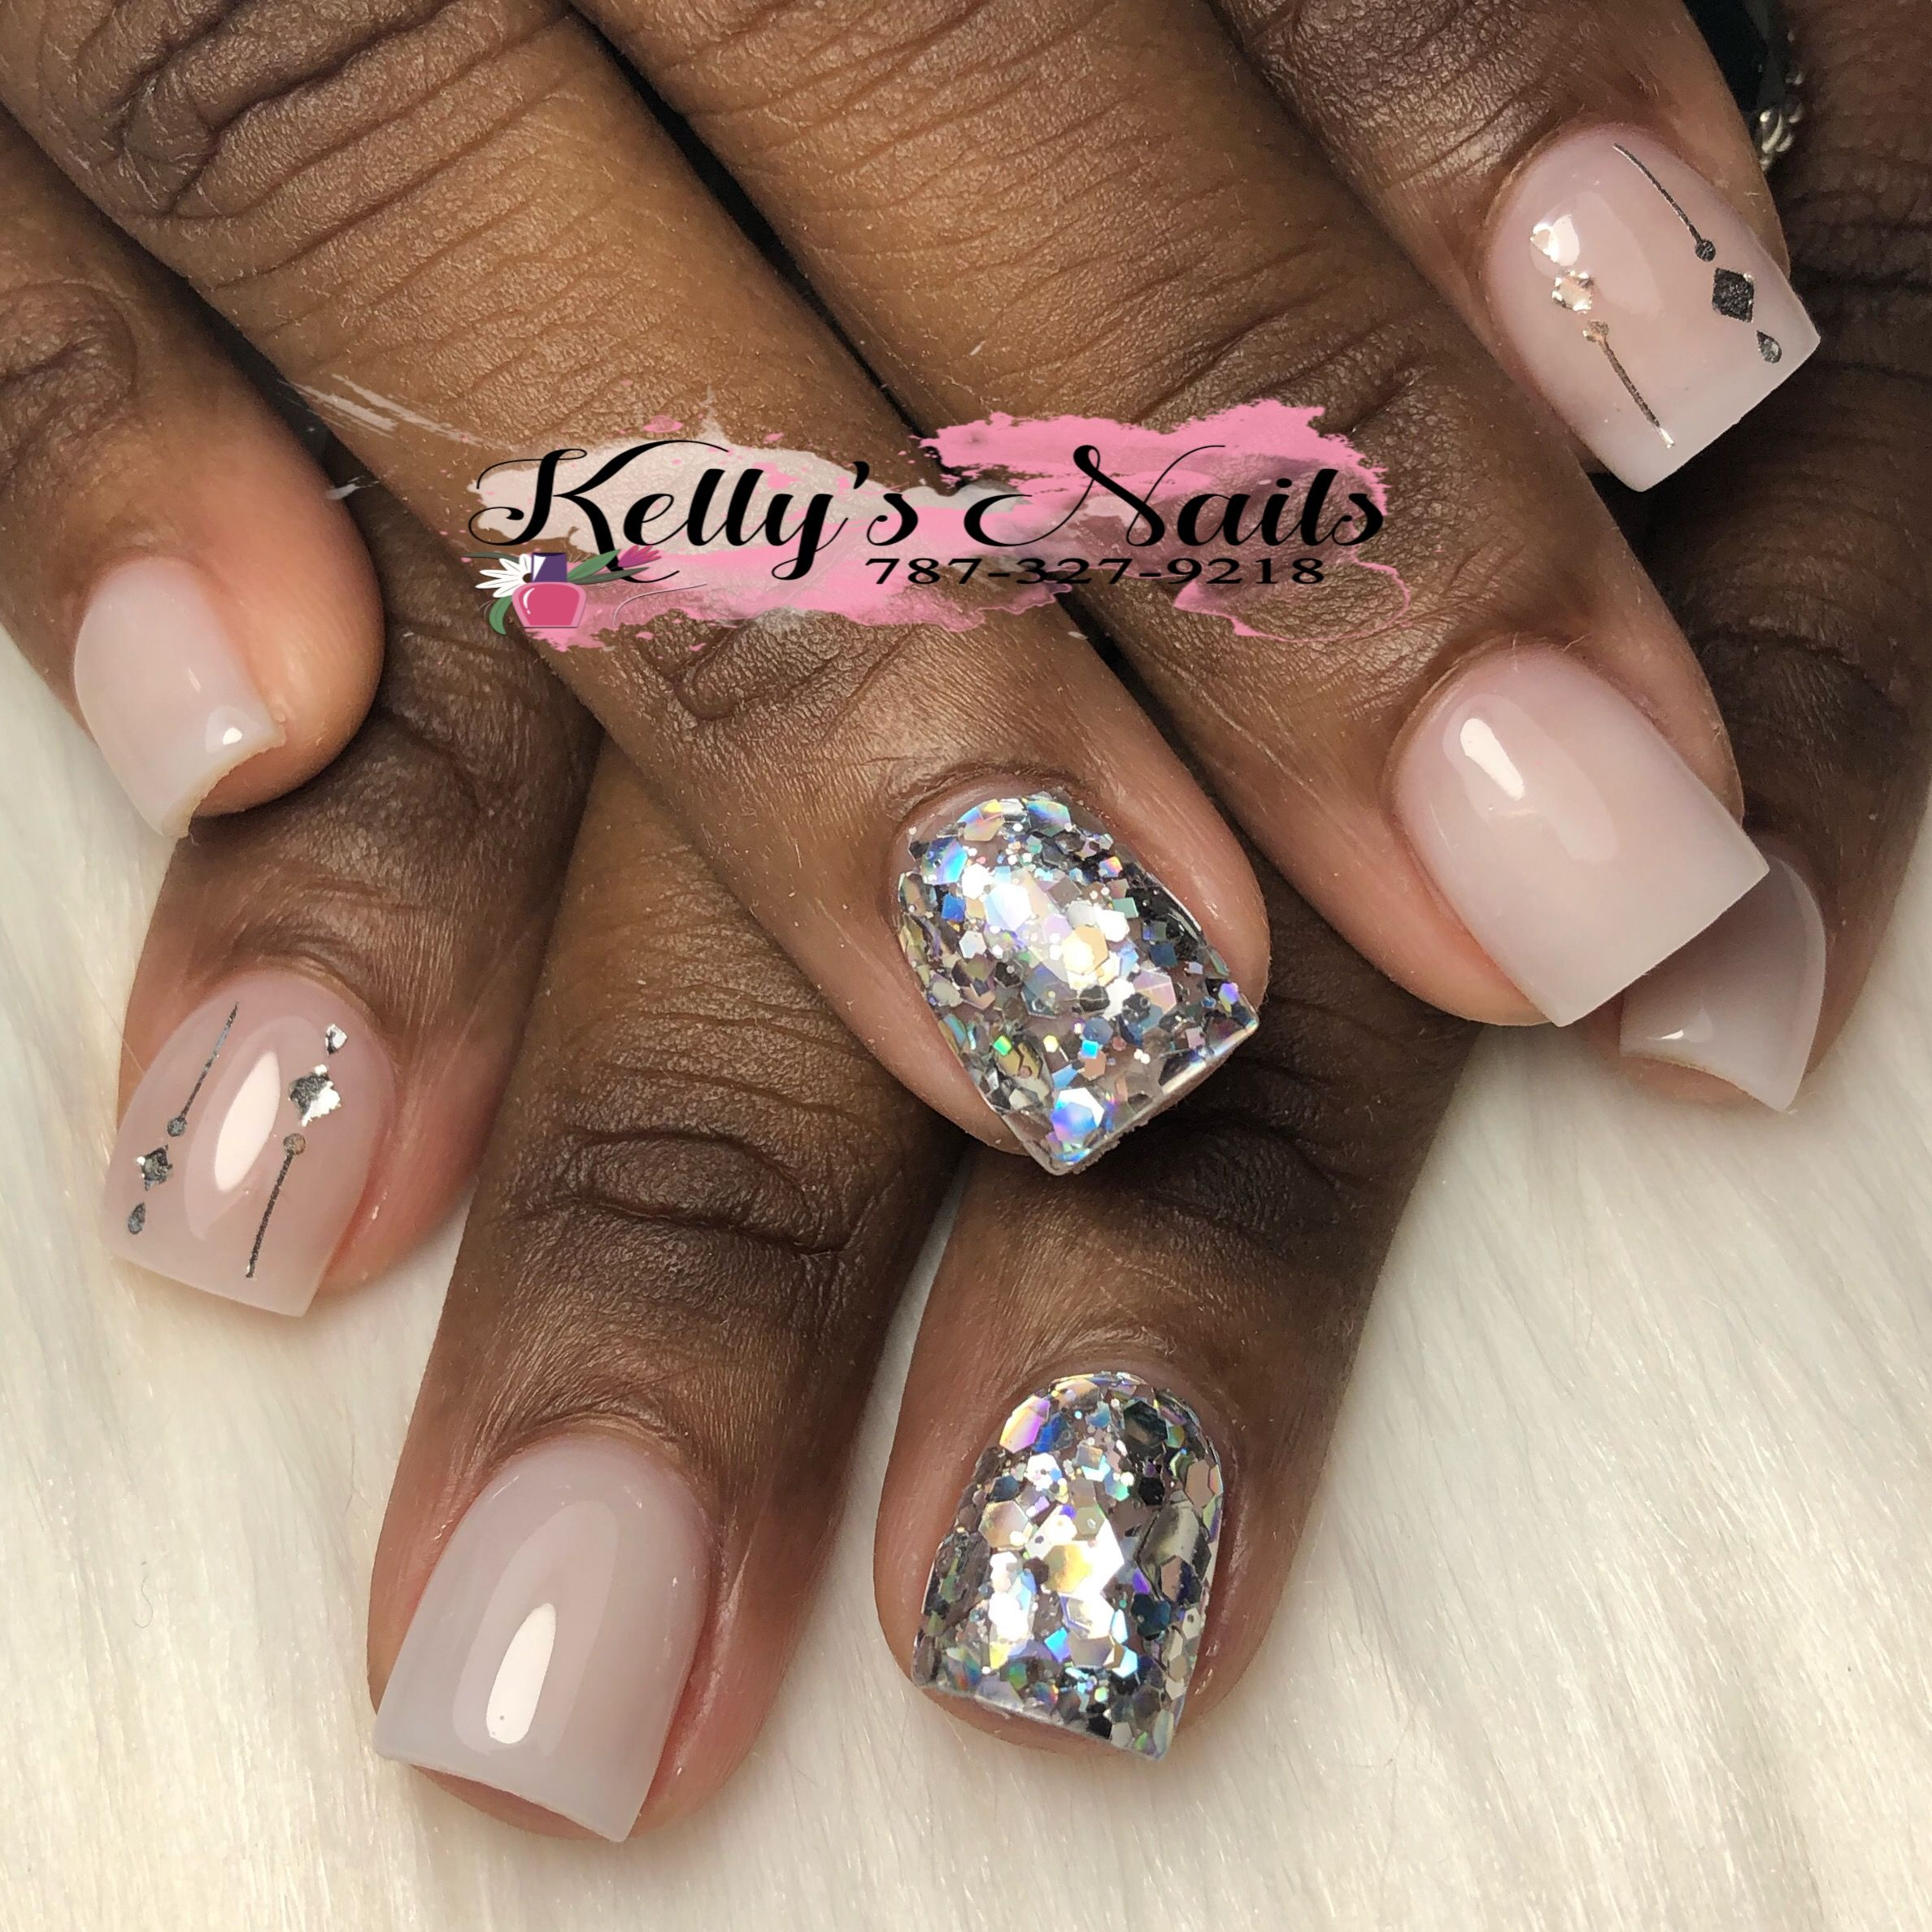 Pin by Kelly on Nails by Kelly   Nails, Beauty, Kelly